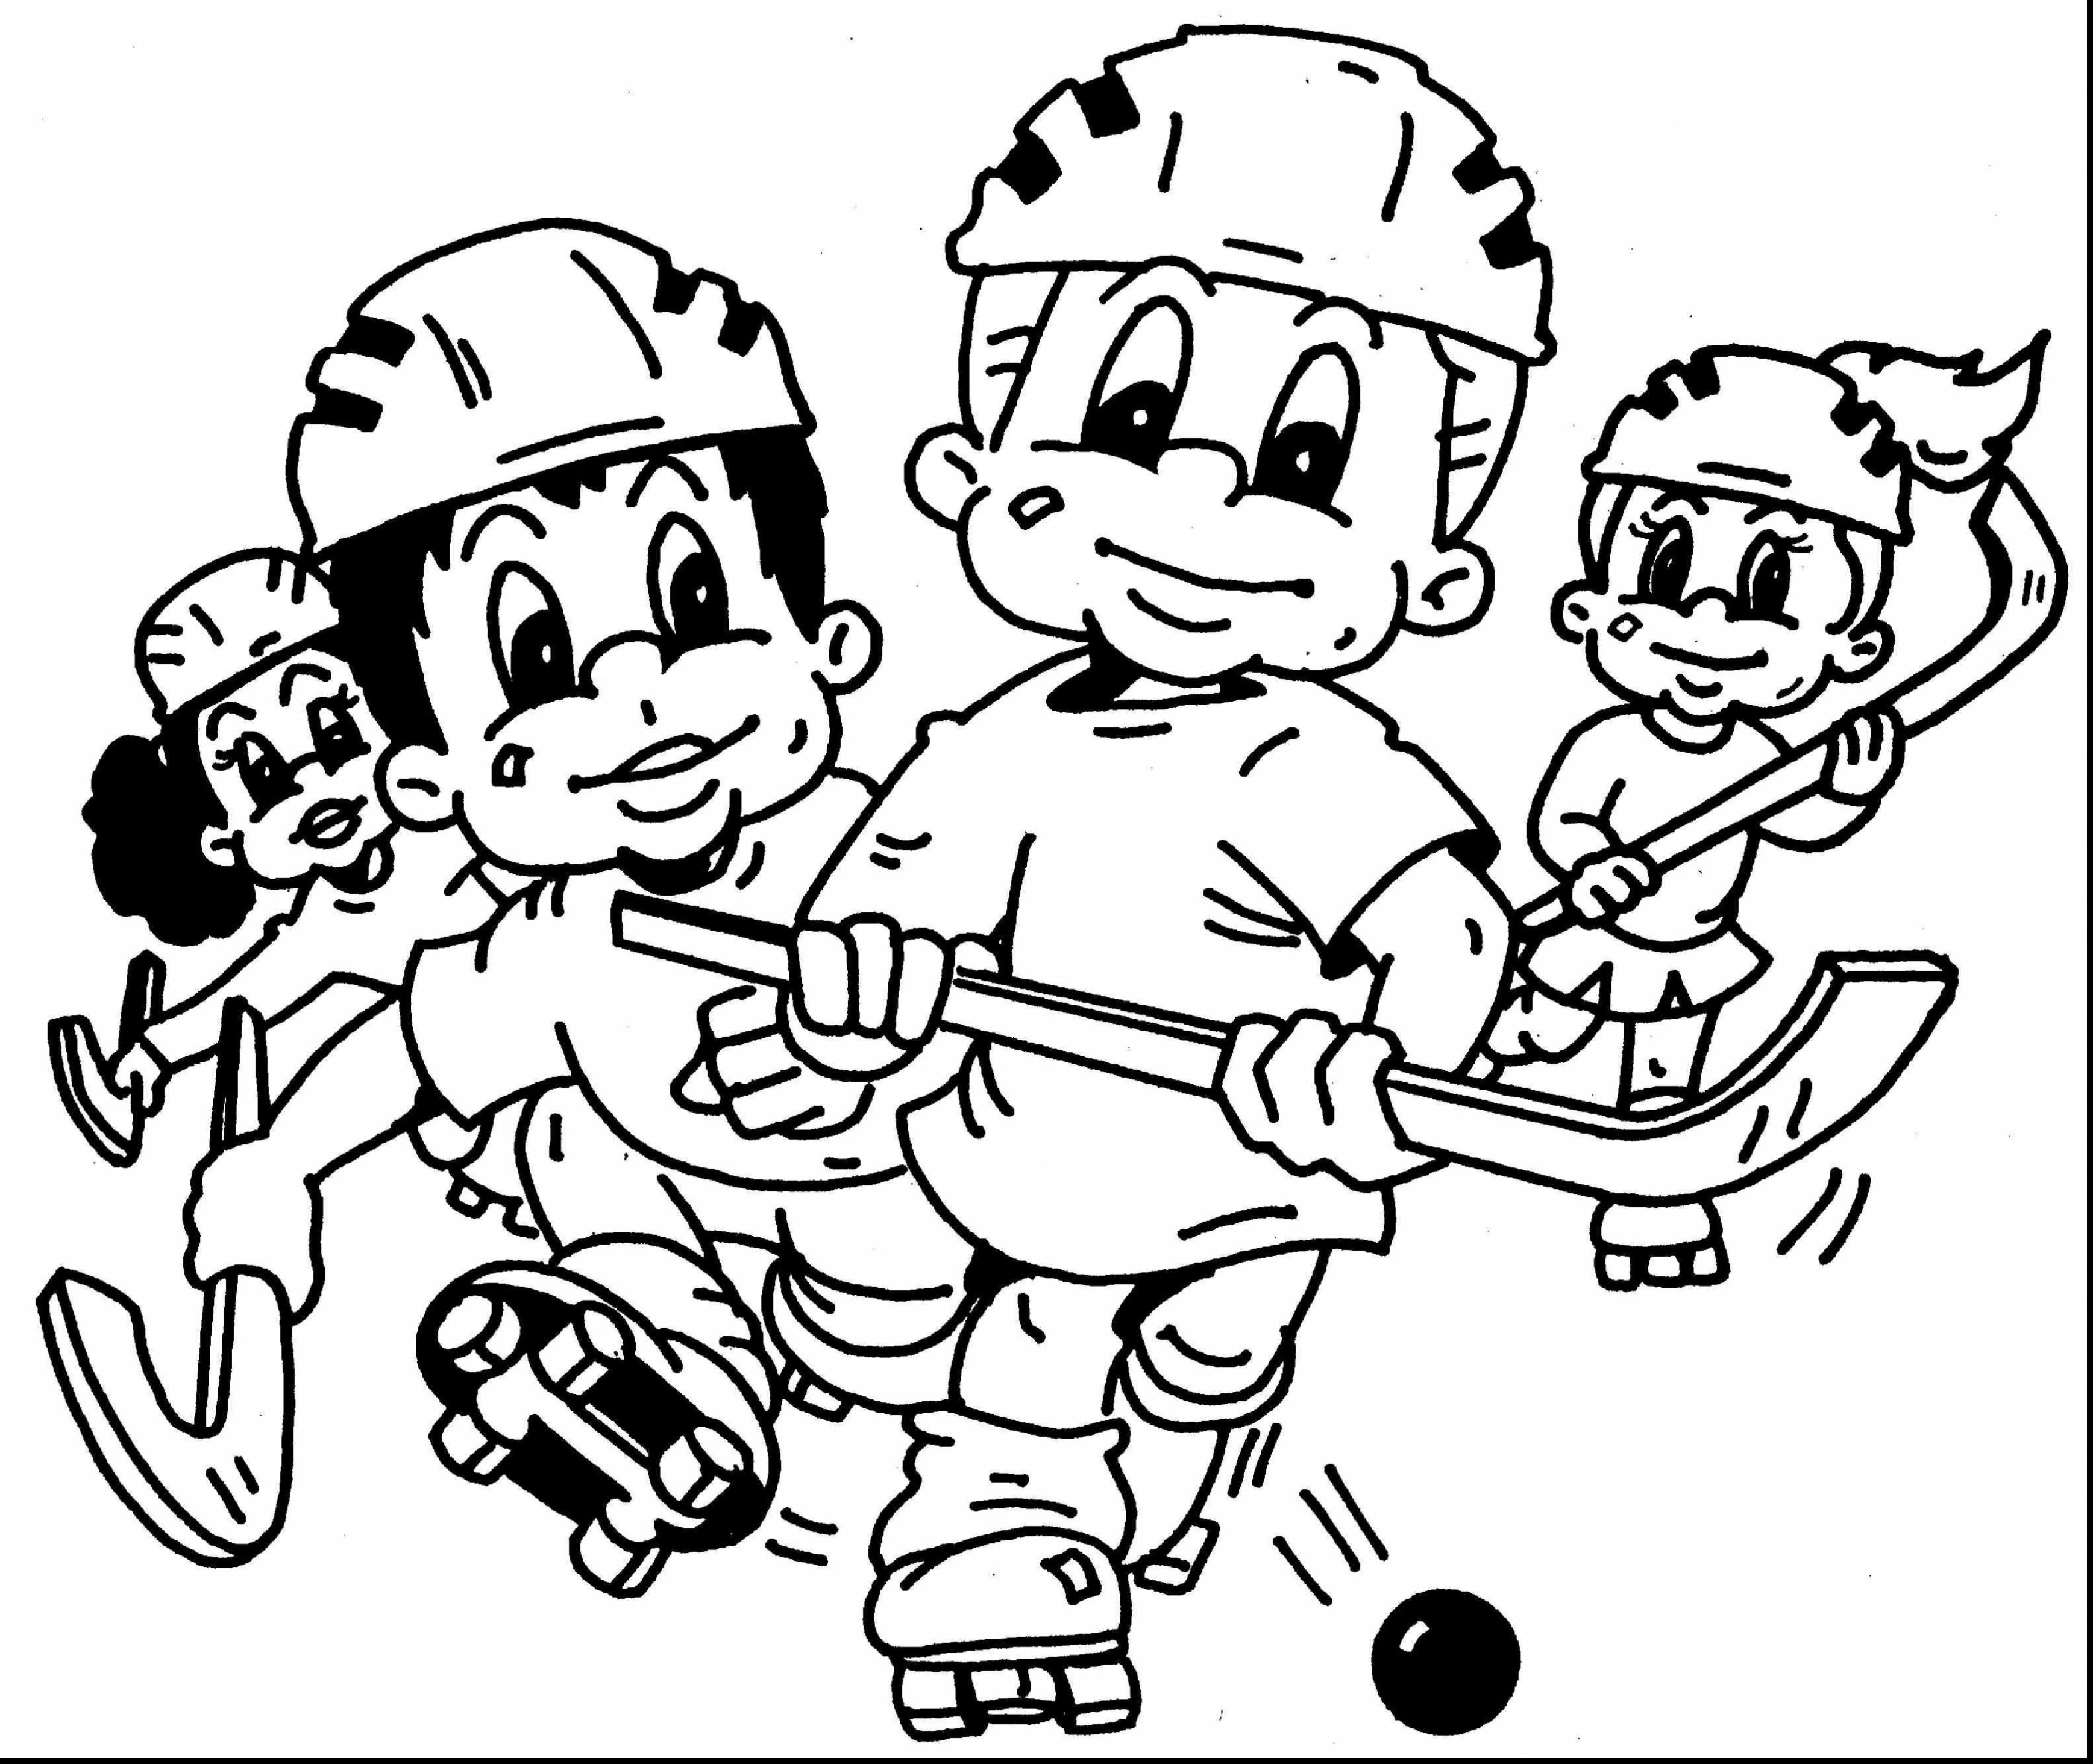 3473x2927 Hockey Rink Coloring Pages Best Of Outstanding Printable Hockey